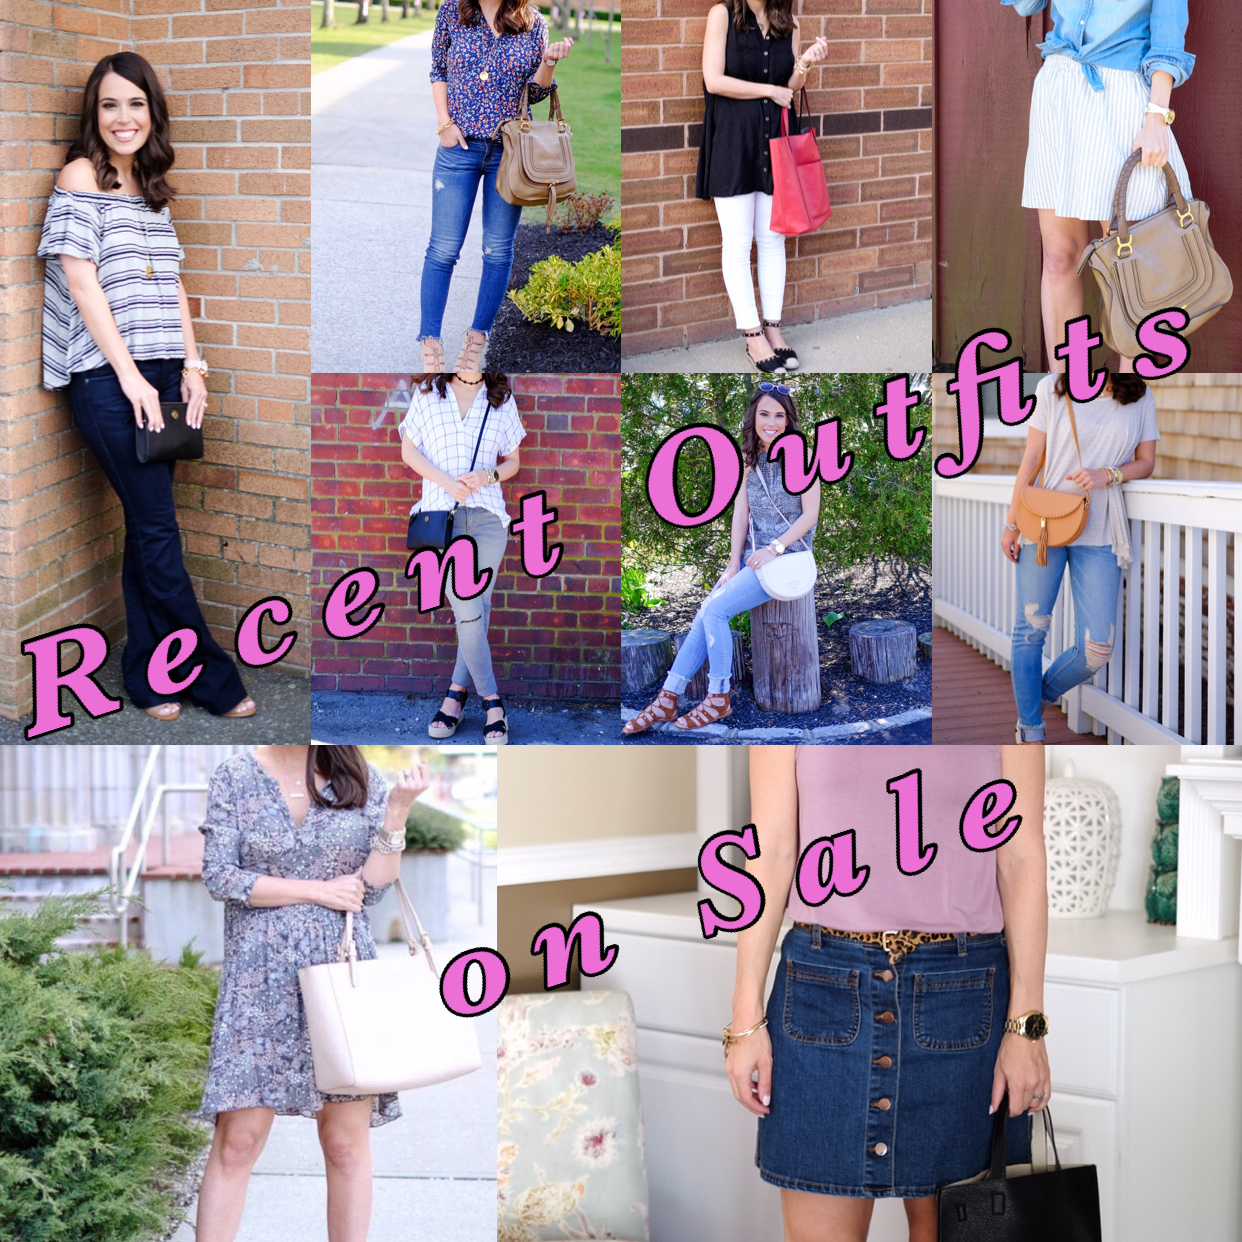 Recent outfits on sale